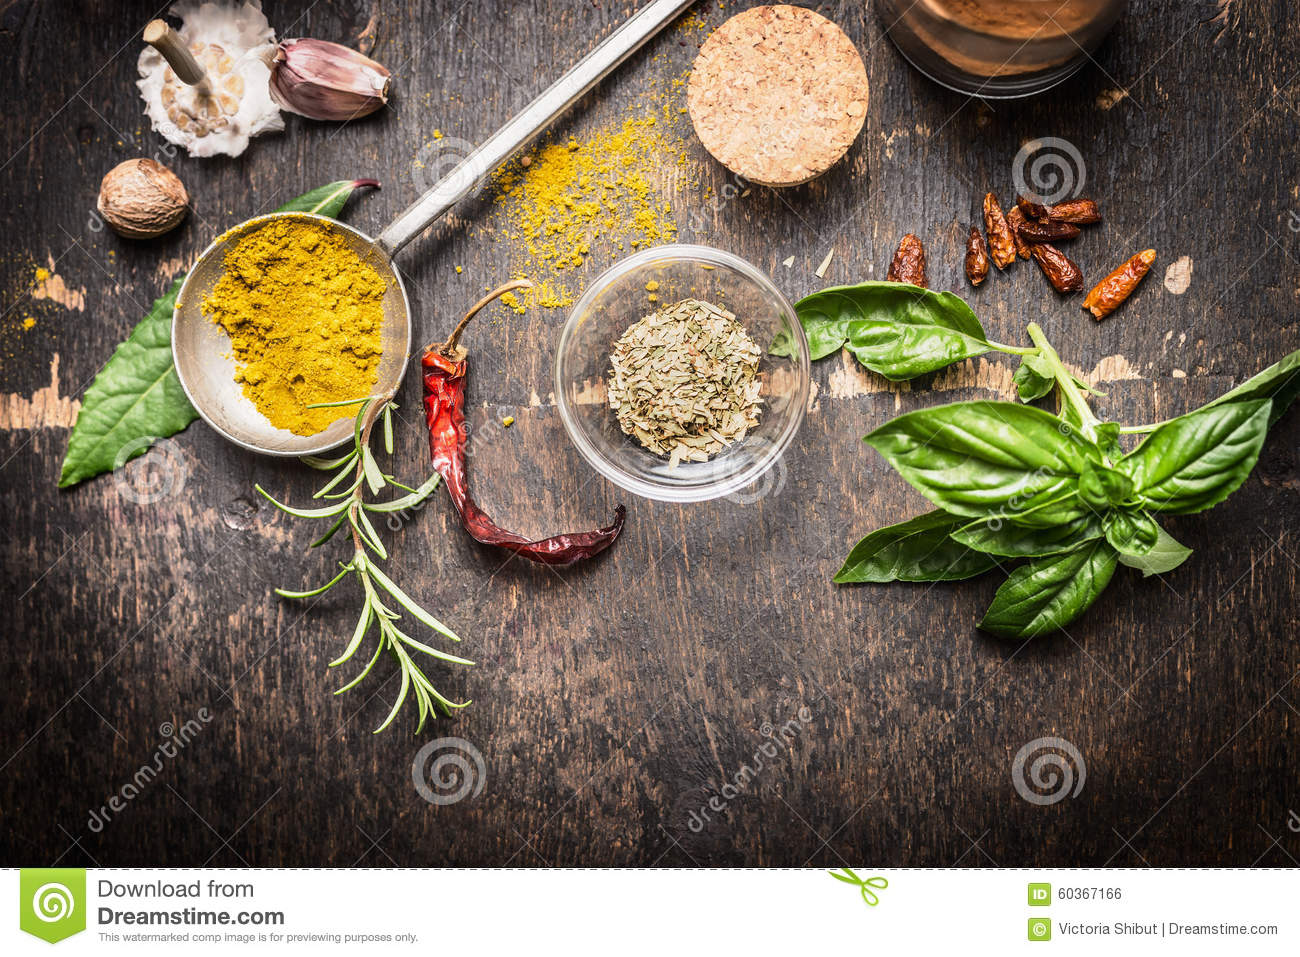 Condiments and spices for creative cooking on dark rustic wooden background, top view